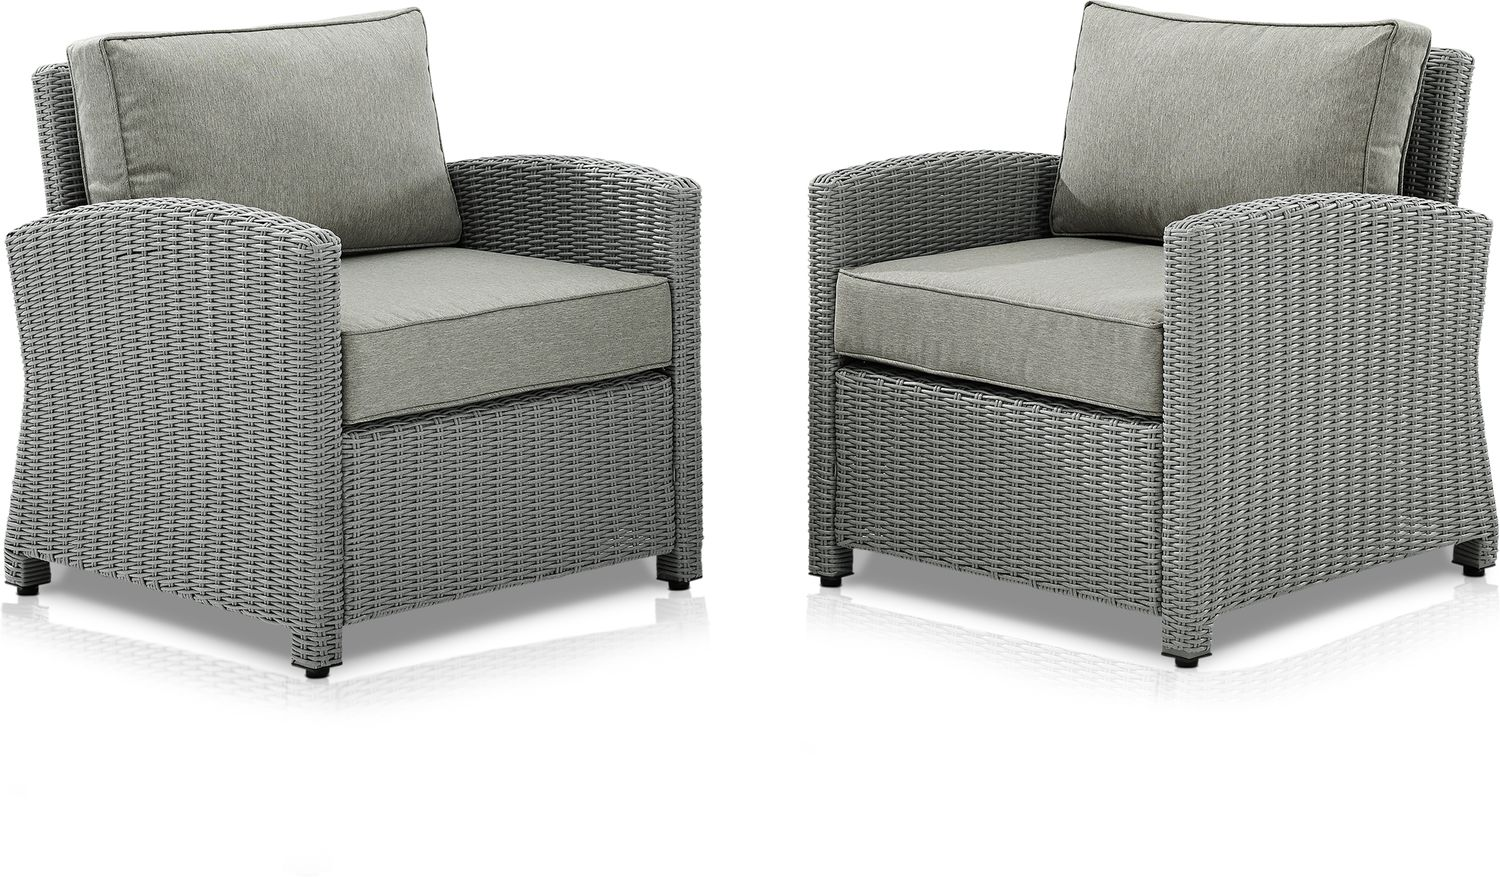 Outdoor Furniture - Destin Set of 2 Outdoor Chairs